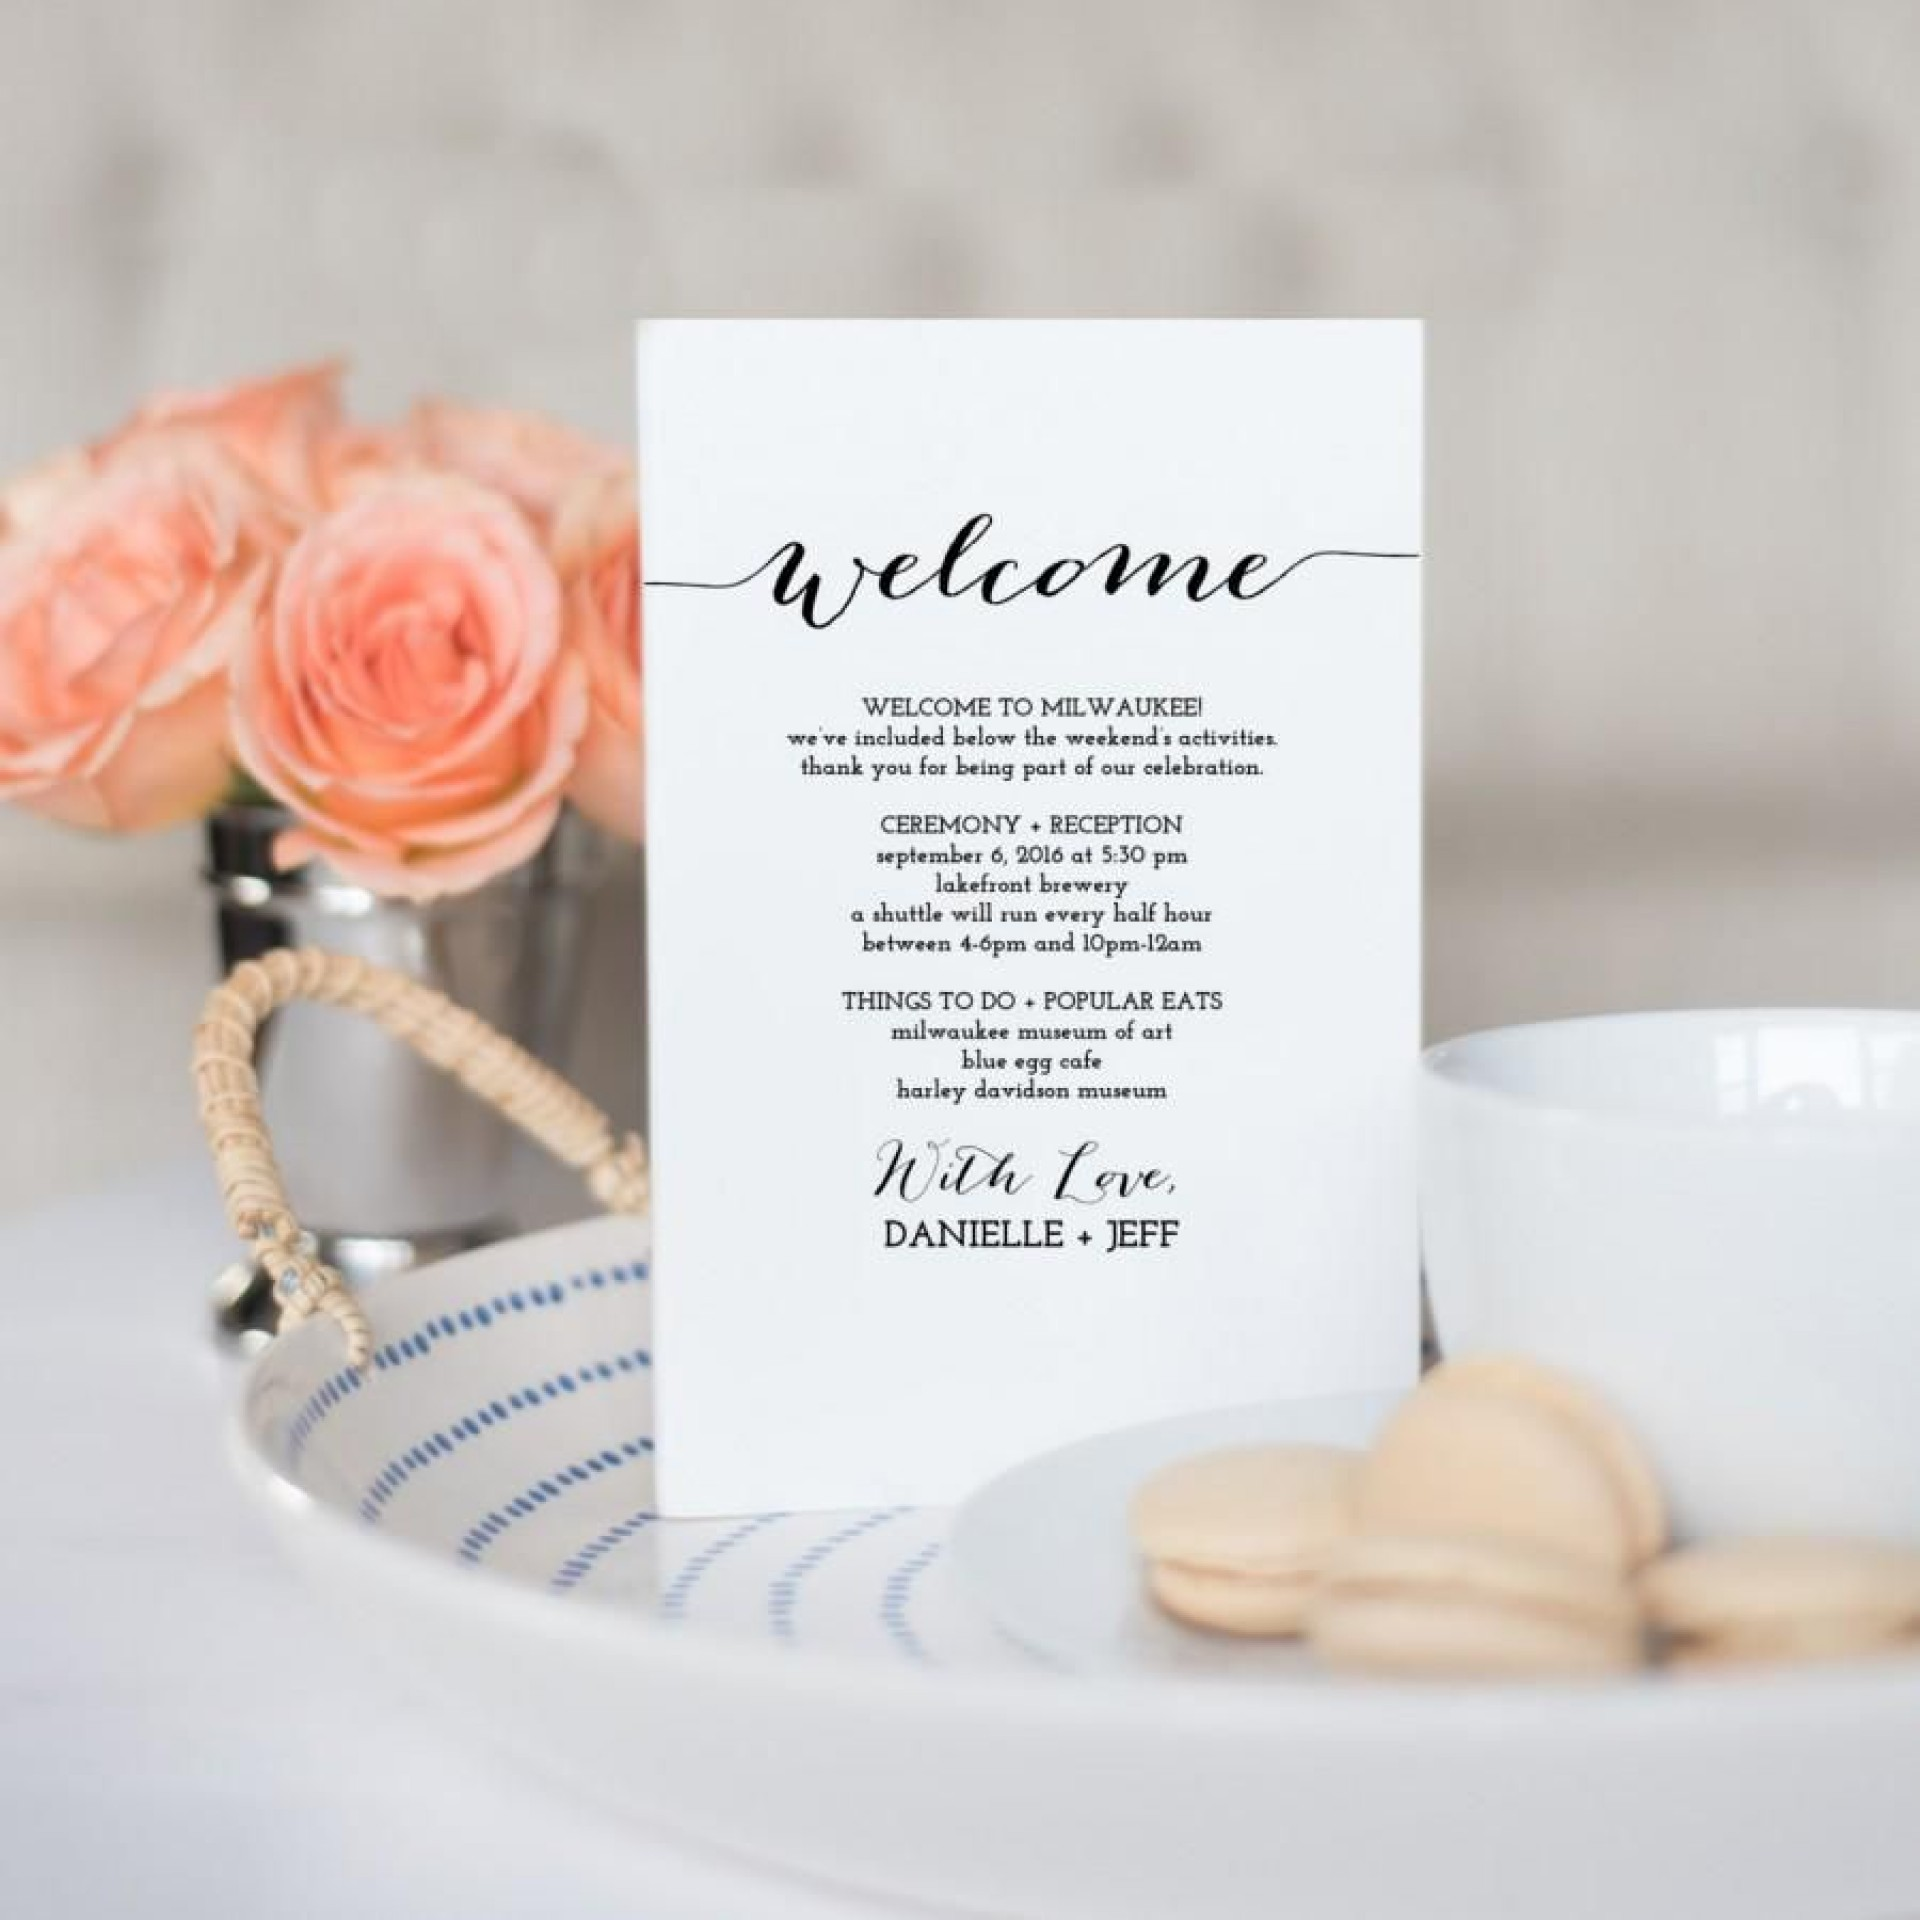 007 Astounding Destination Wedding Welcome Letter Template Highest Clarity  And Itinerary1920